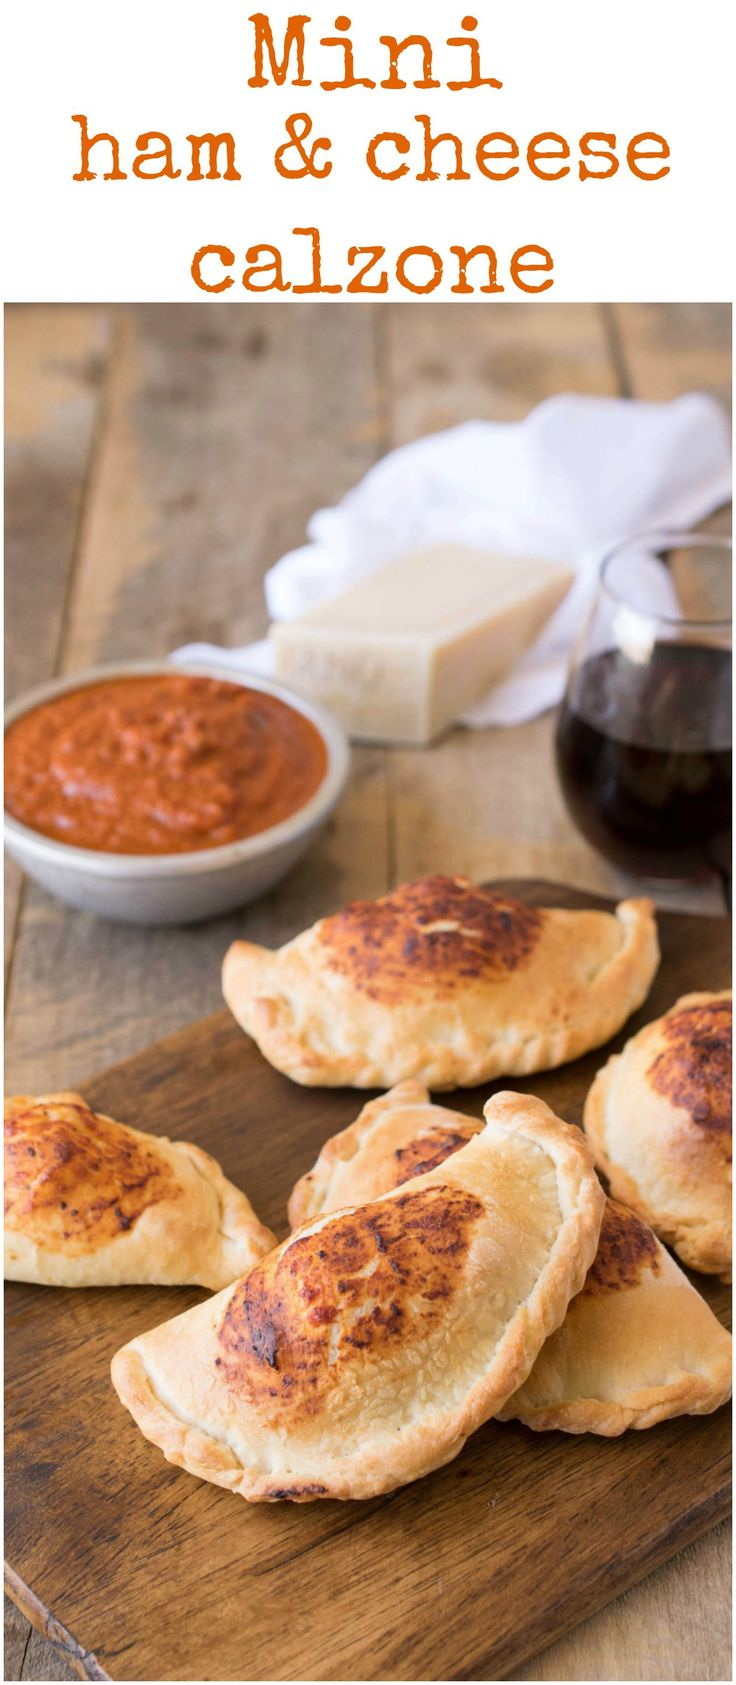 Mini ham & cheese calzones are easy to make. Homemade pizza dough filled…